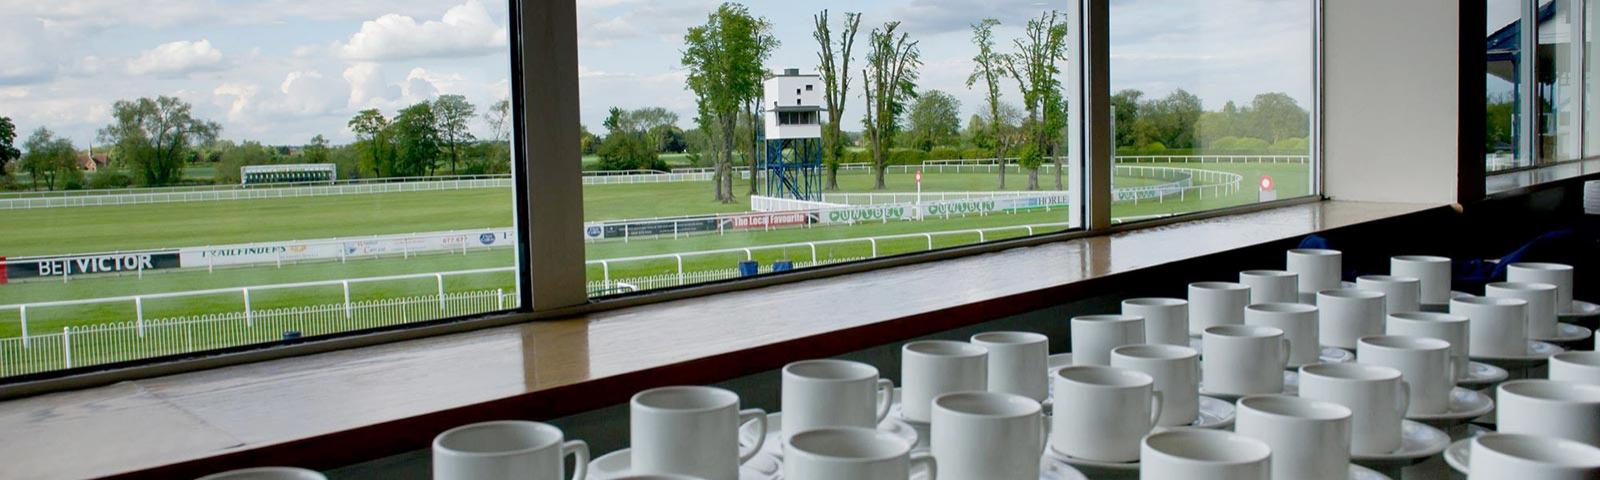 Fresh cups and saucers on a table with the green turf of the Royal Windsor Racecourse track visible outside.